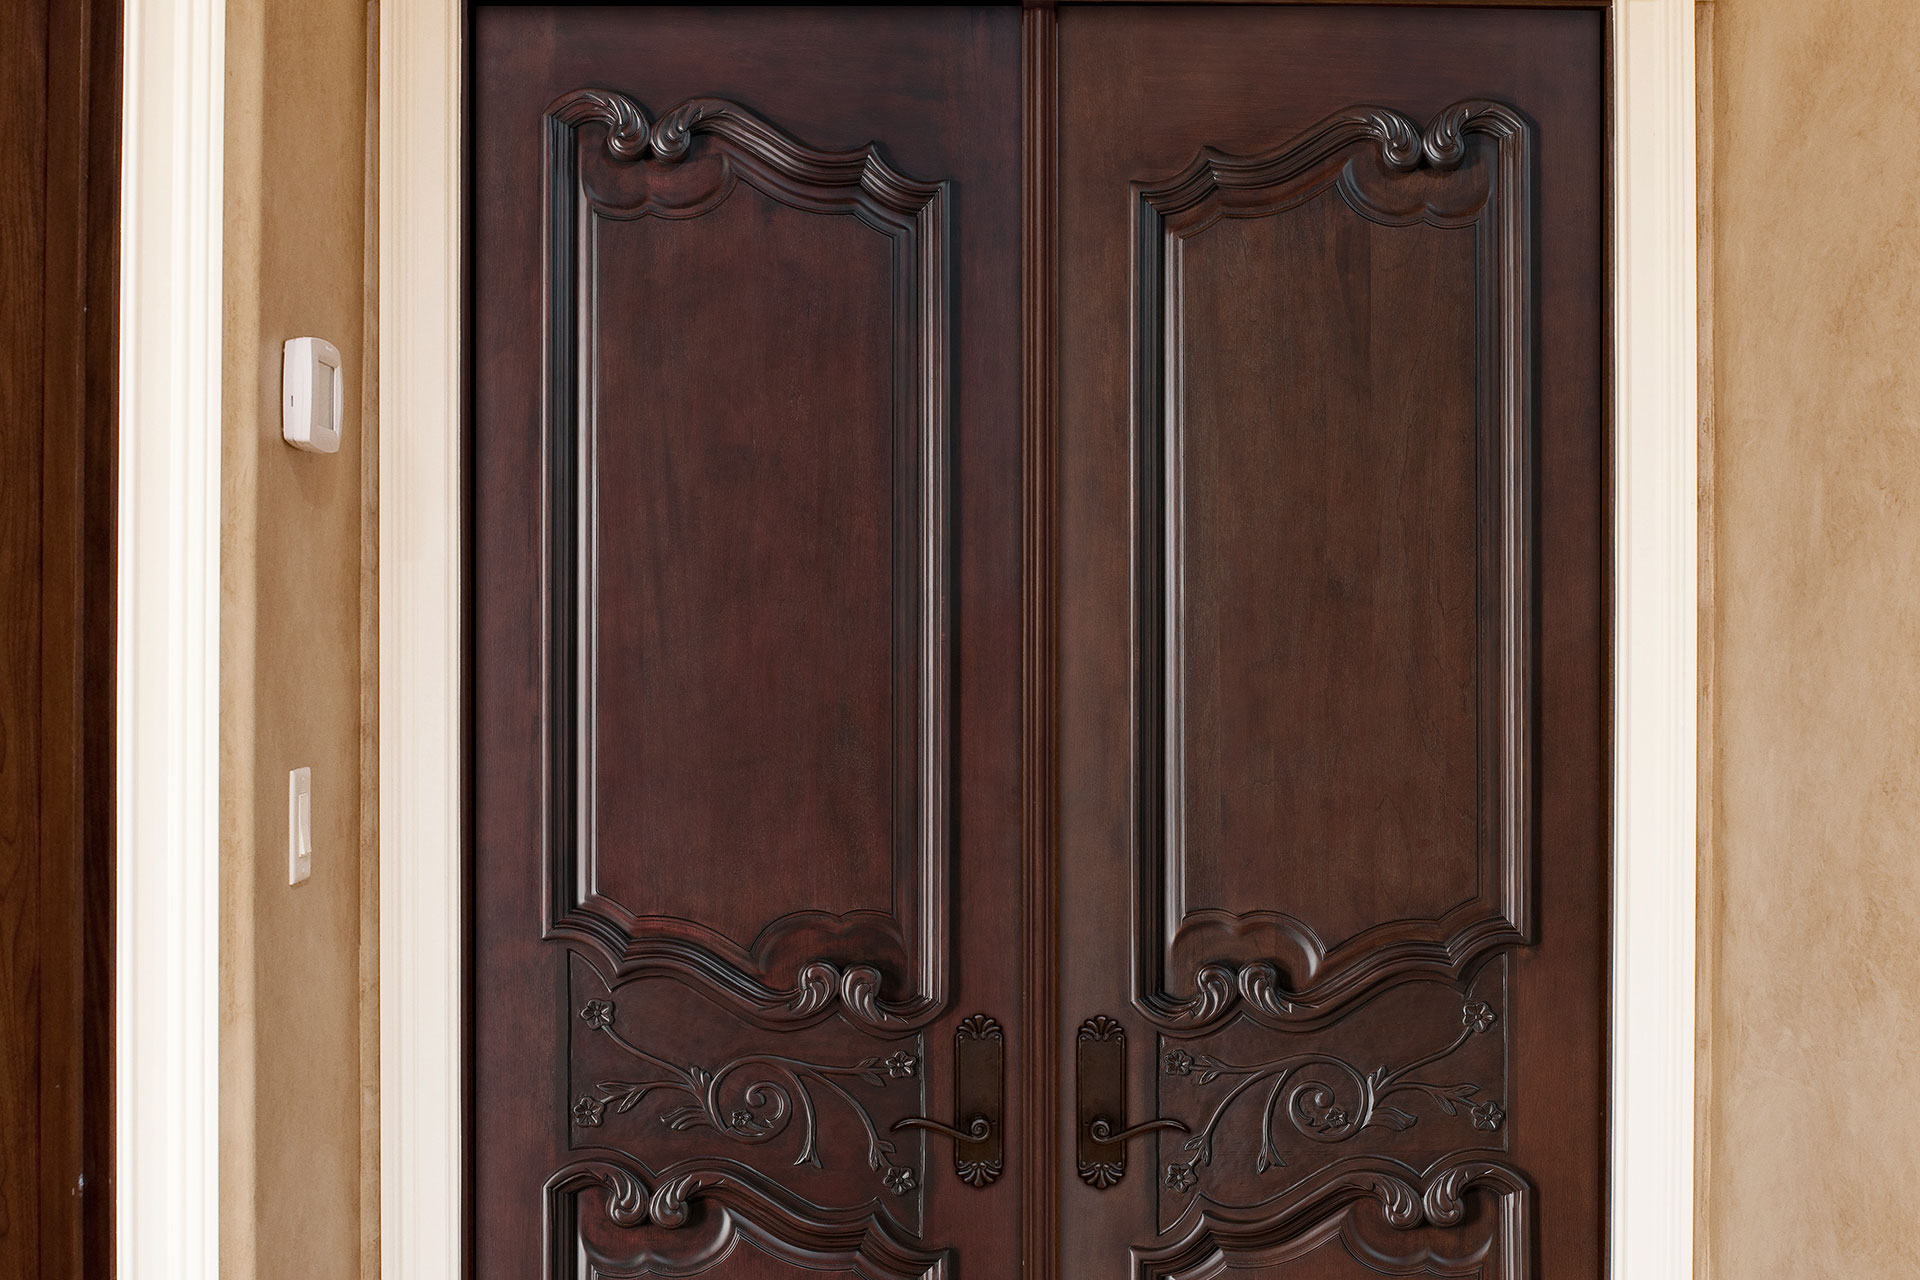 Interior Door Custom Double Solid Wood With Dark Mahogany Finish Artisan Model Gdi 9000 Dd Glenview Doors In Chicago Il At Glenview Haus